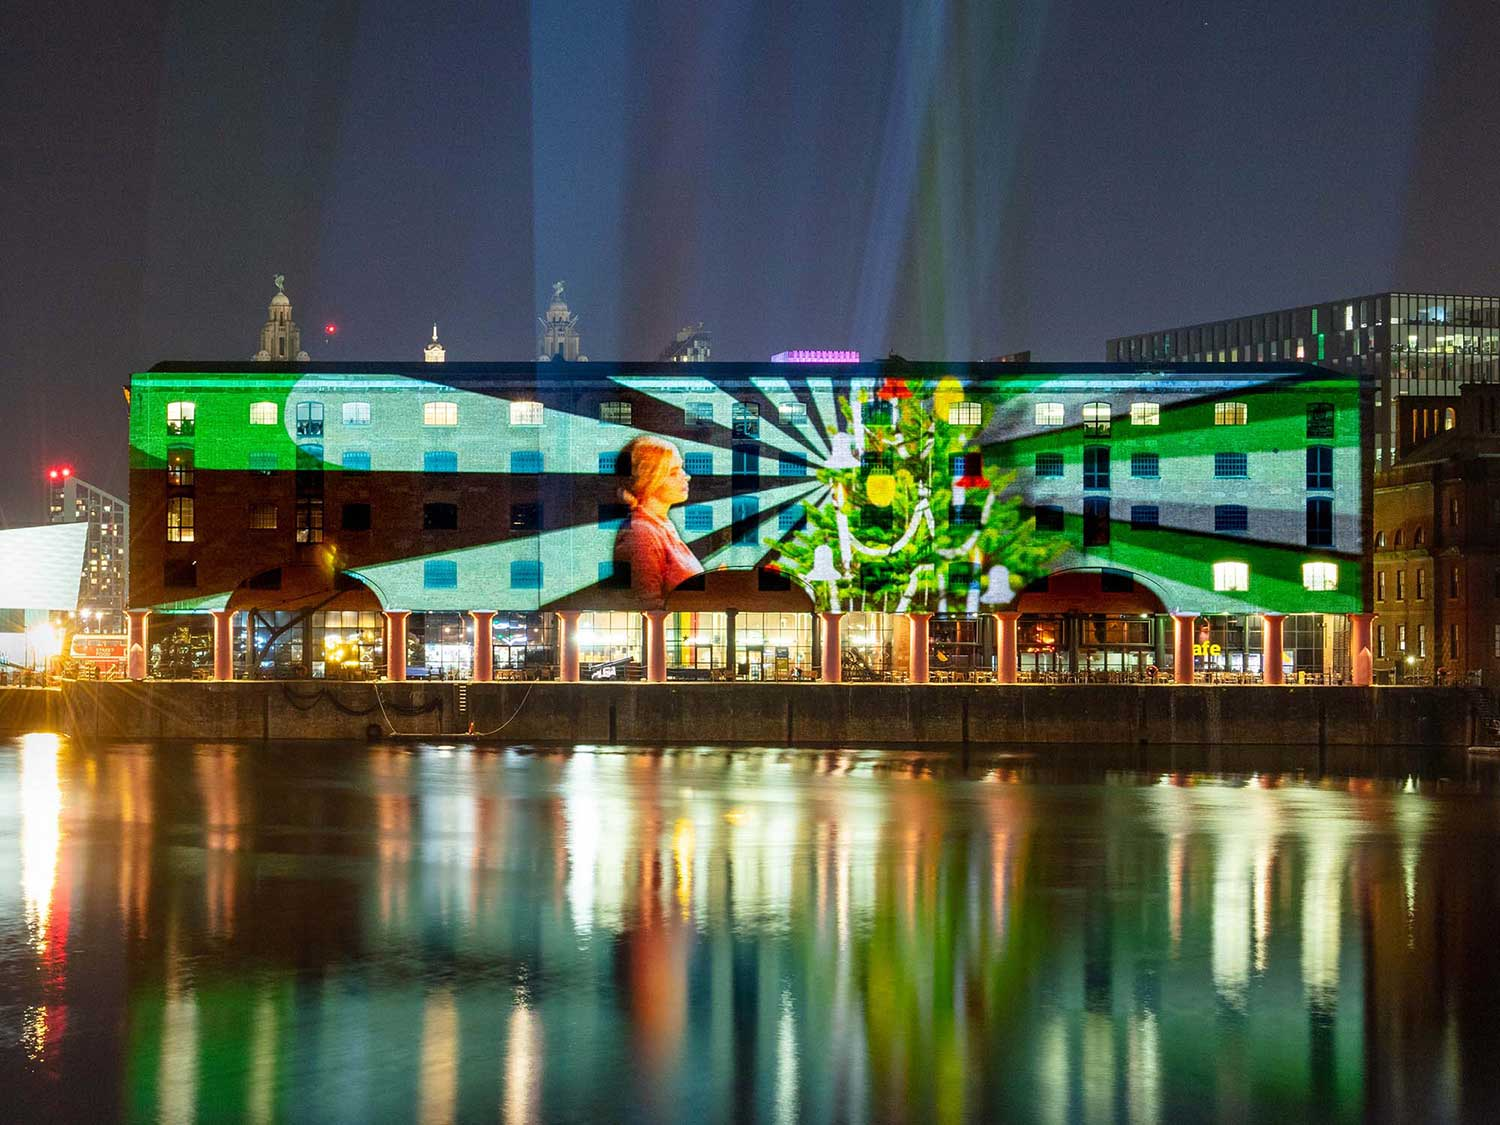 Liverpool Albert Dock Christmas Projection mapped light show